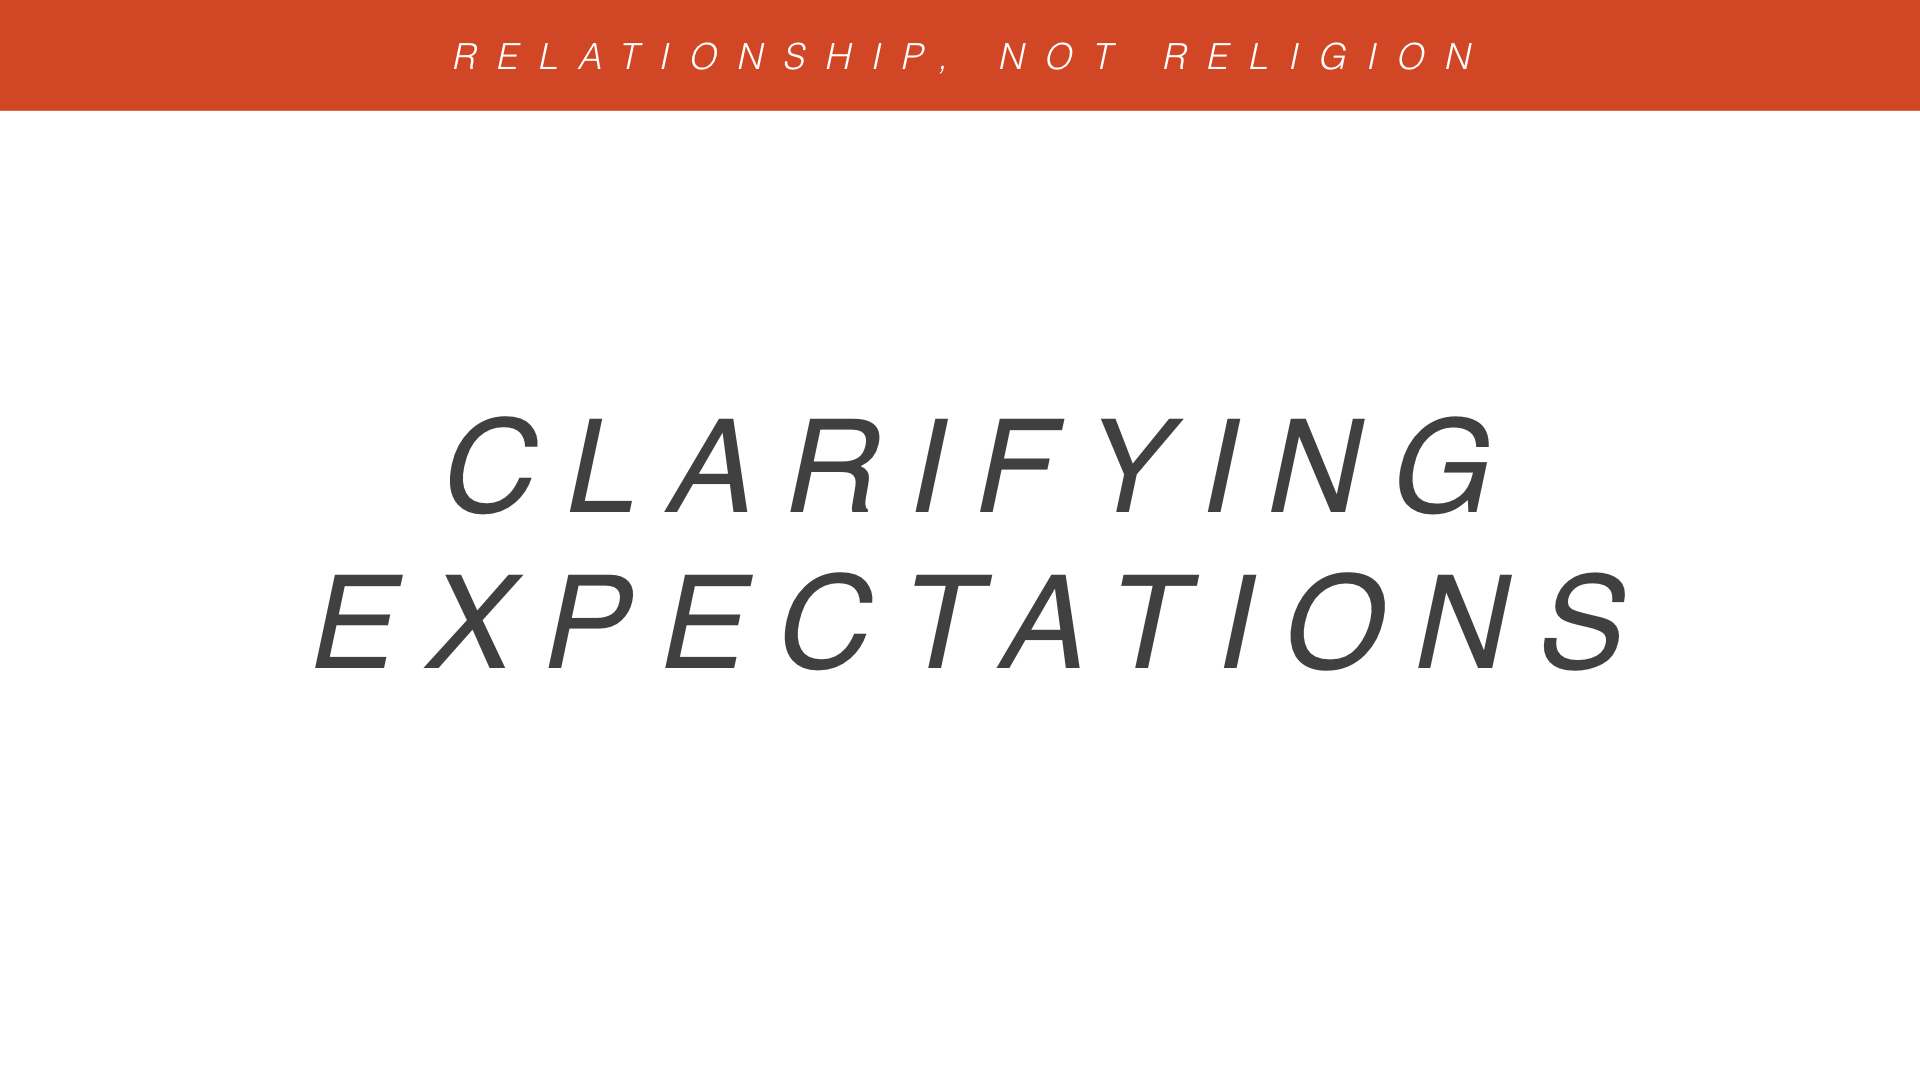 Real Christianity - Week 4 - Relationship, Not Religion copy.011.jpeg